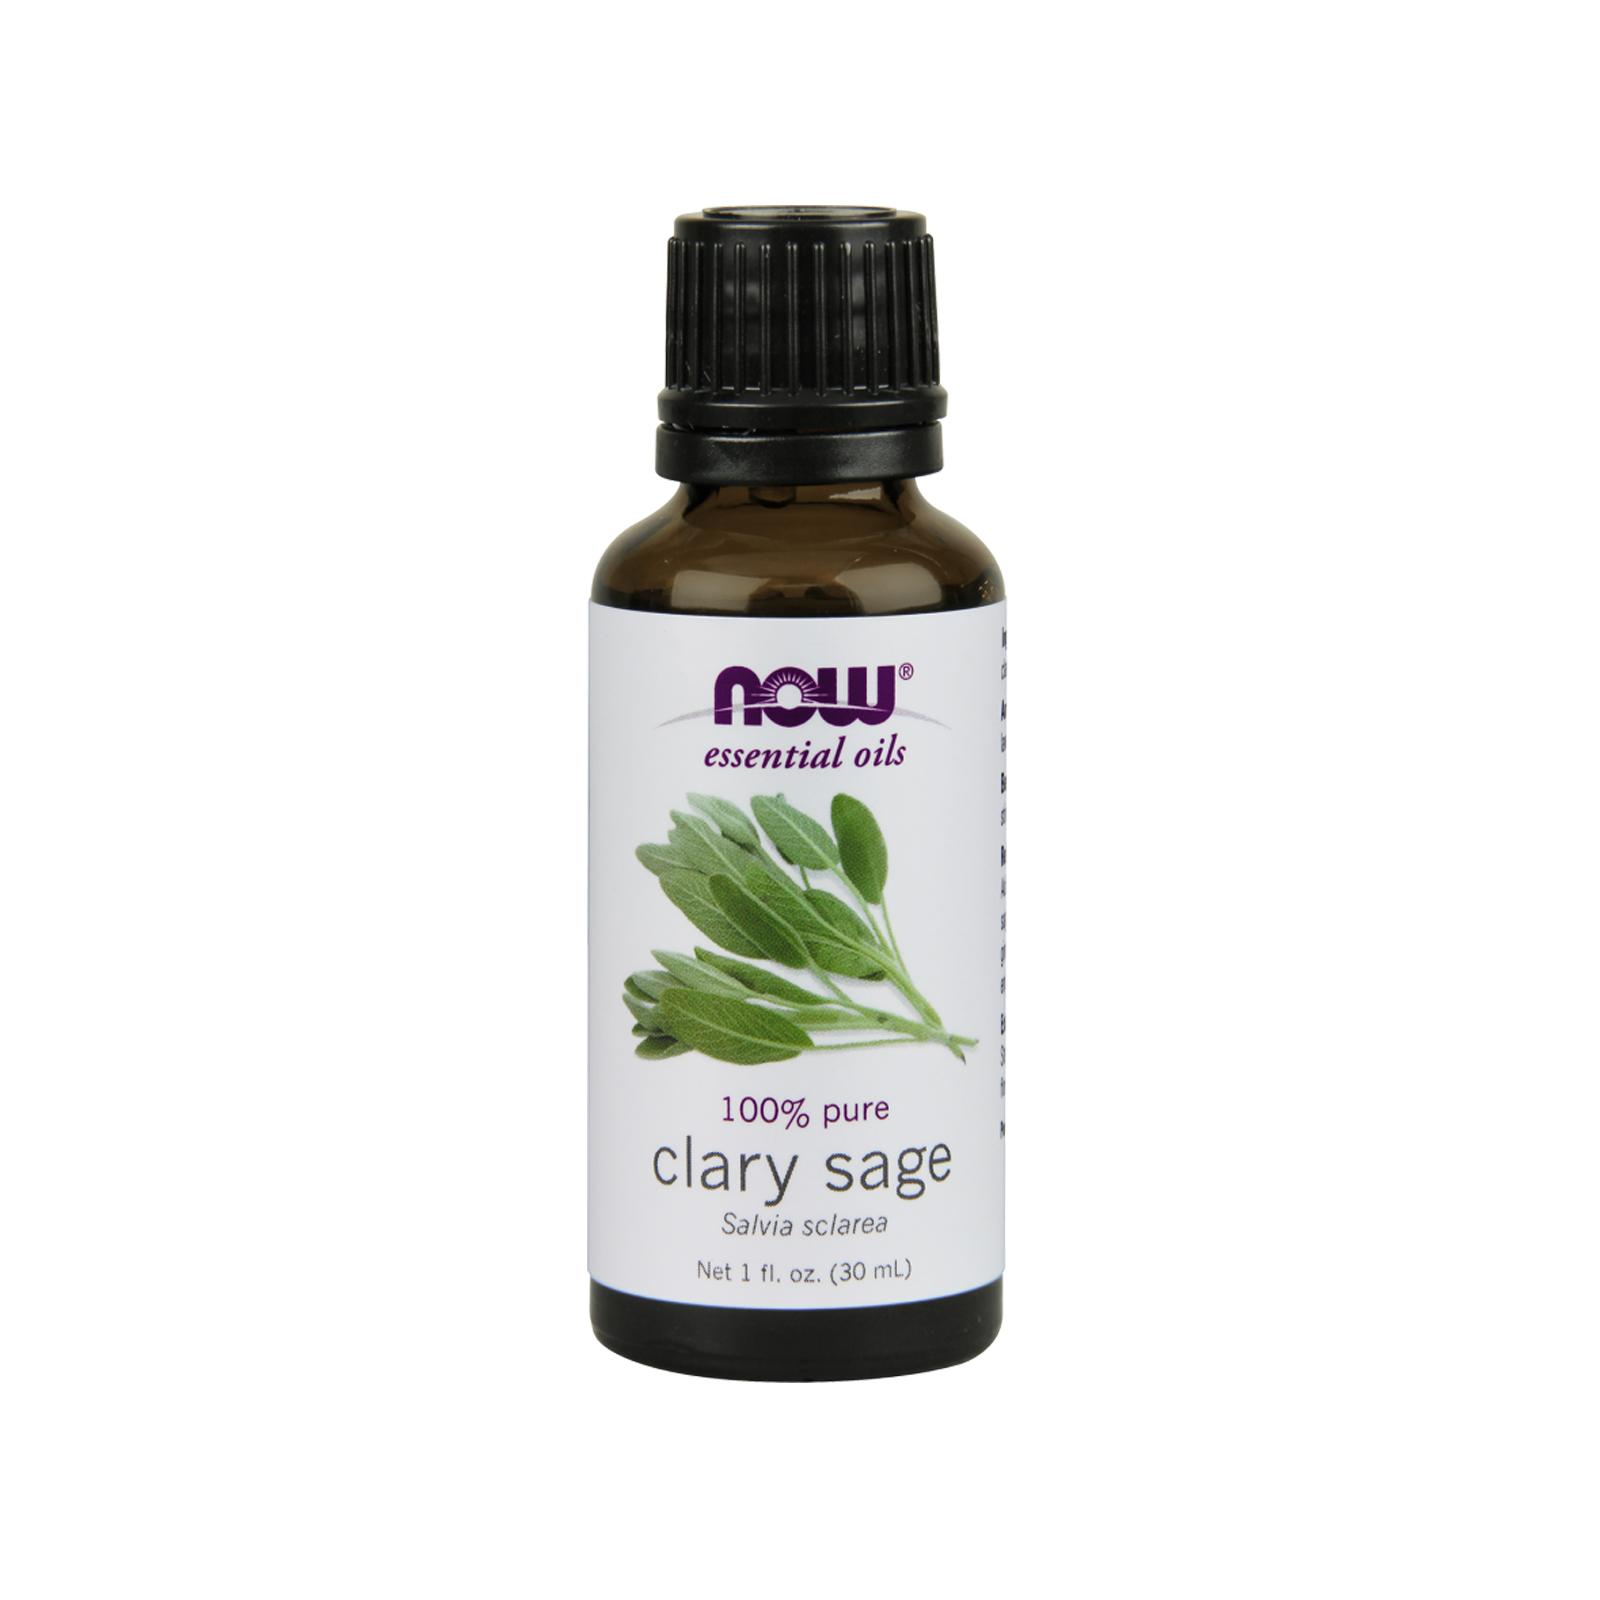 Now Foods Essential Oils Clary Sage, 1 fl oz (30 ml)